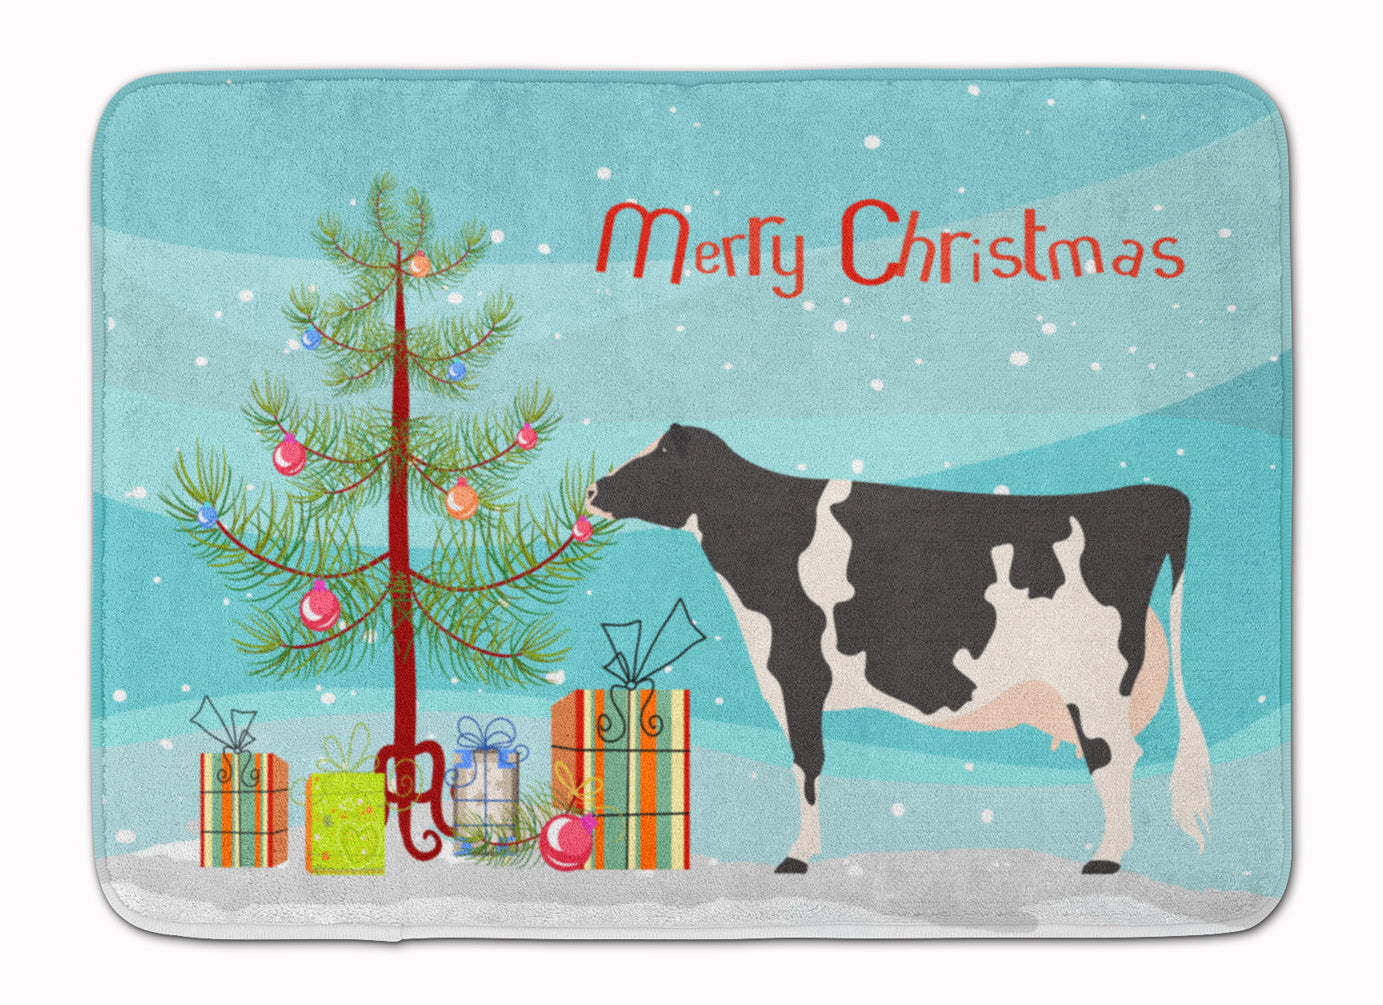 Holstein Cow Christmas Machine Washable Memory Foam Mat BB9189RUG by Caroline's Treasures